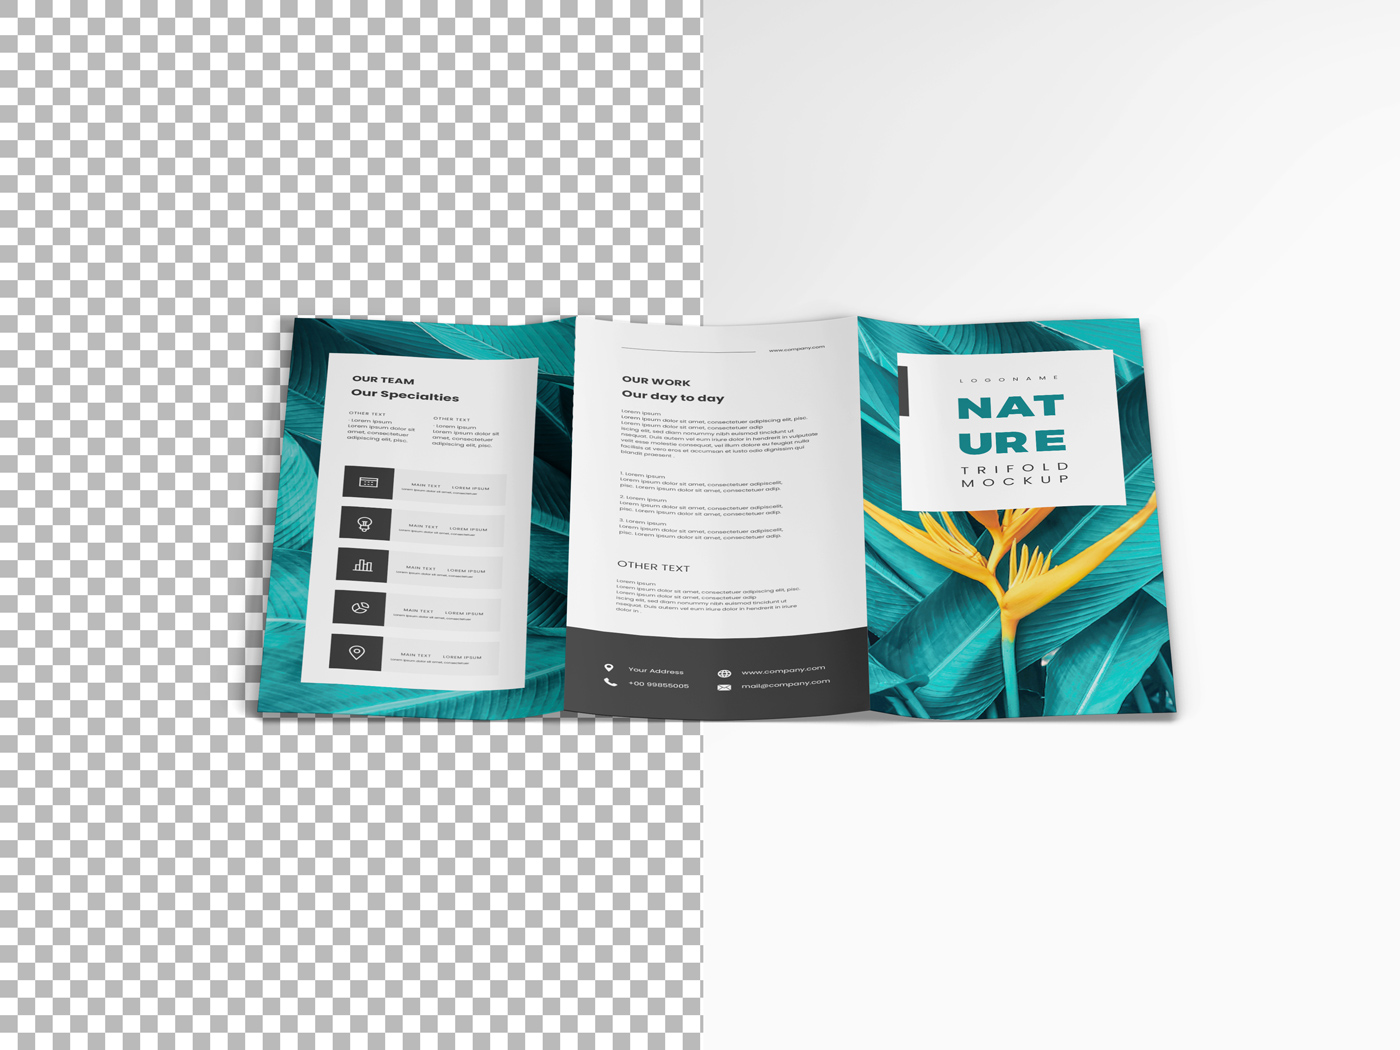 A4 Trifold Mockups V3 example image 11